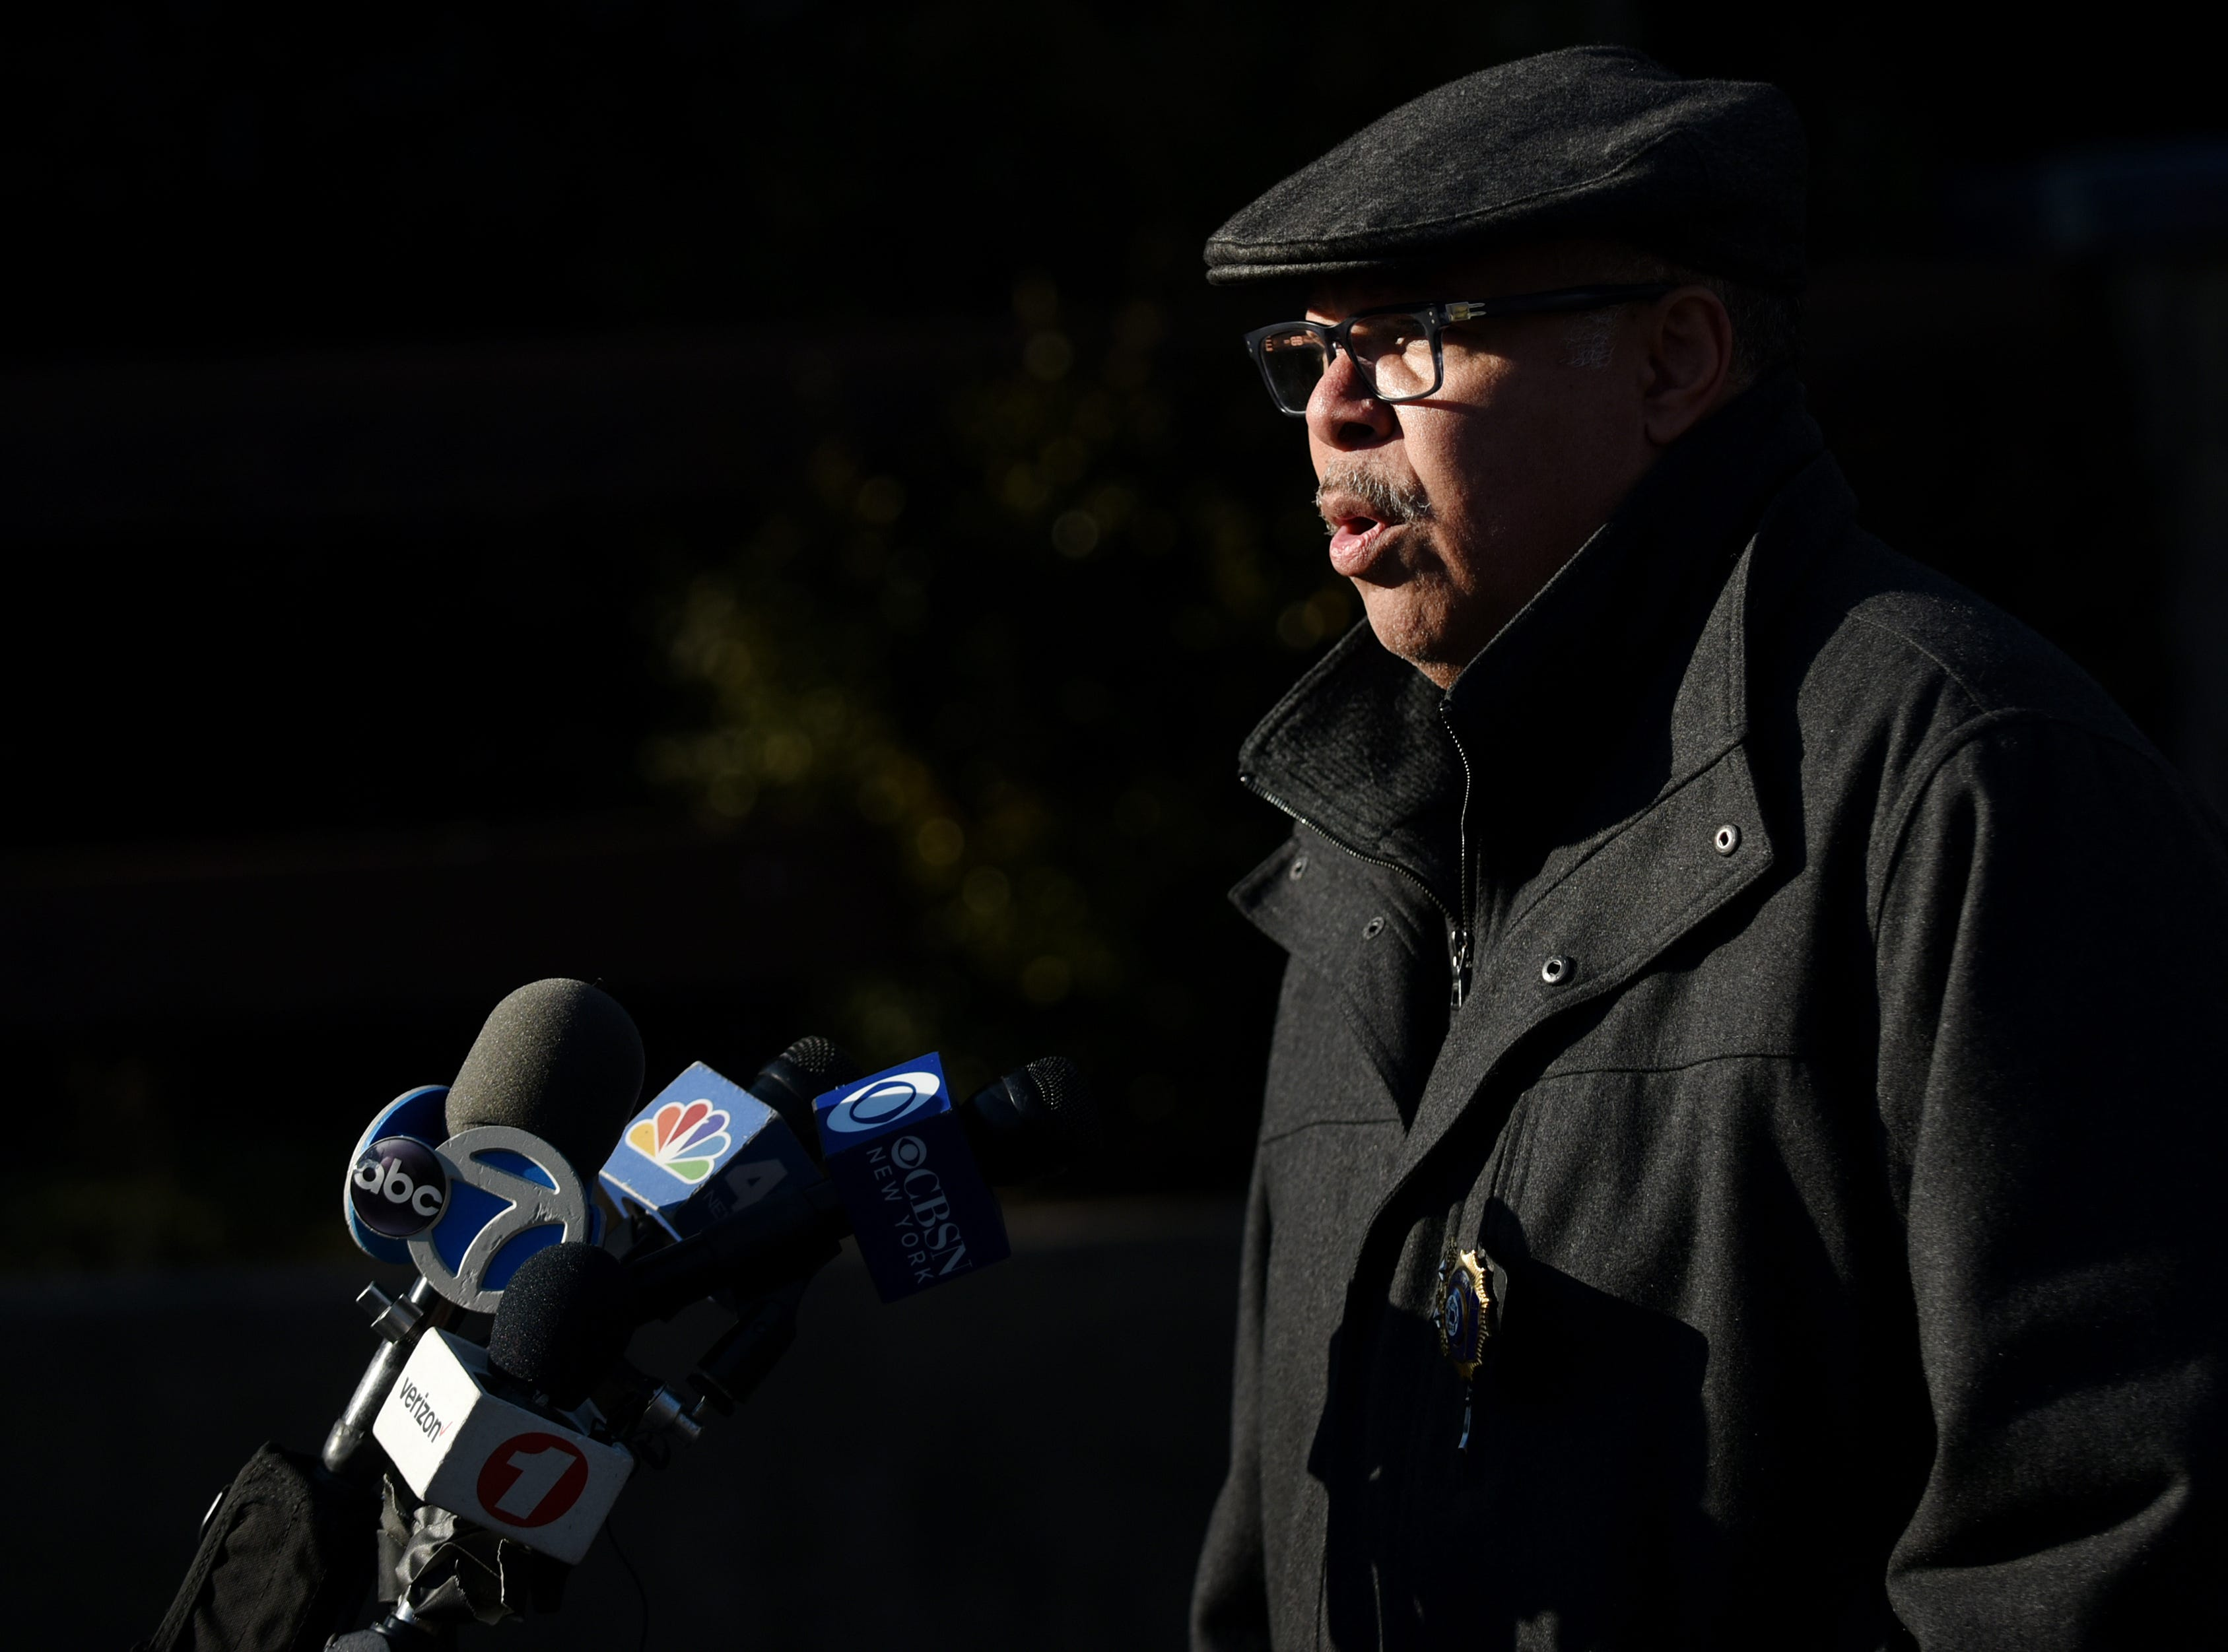 Lawrence Suffern the Englewood Chief of Police, confirms reports of a double homicide in Englewood on Saturday February 16, 2019.